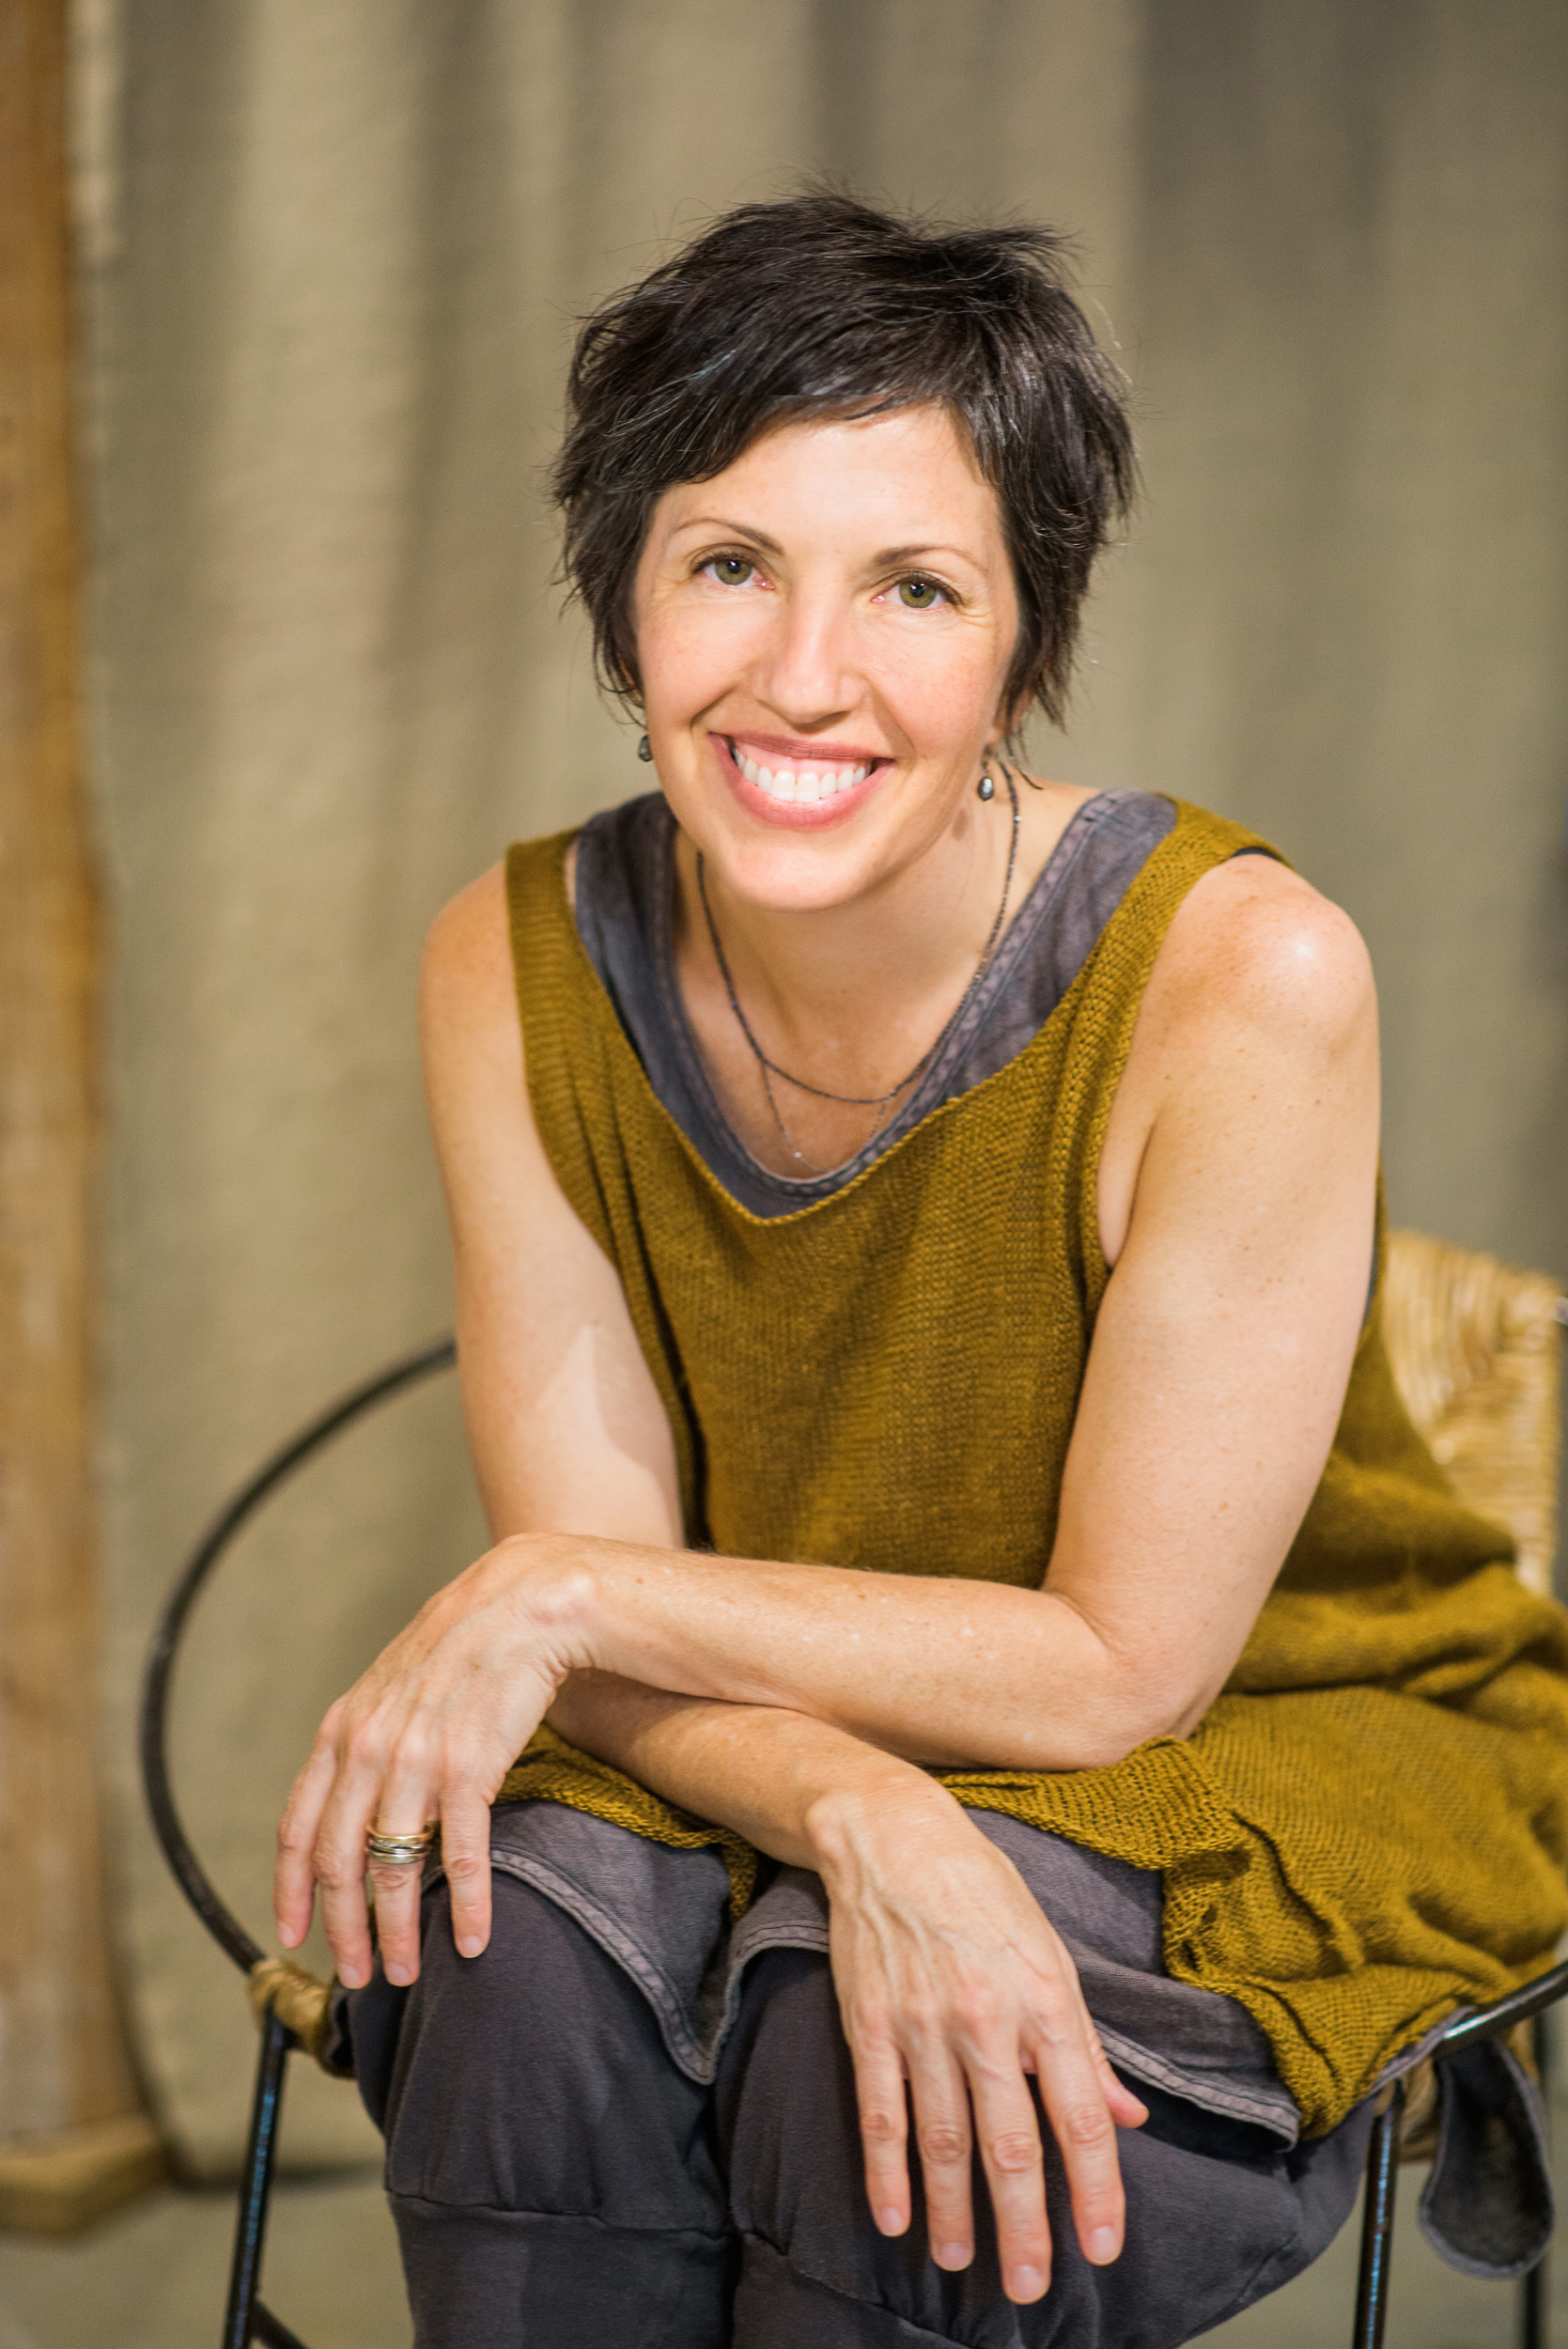 Headshot, Business Branding Photography for Cara May Knits by Sarah Hooker Photography